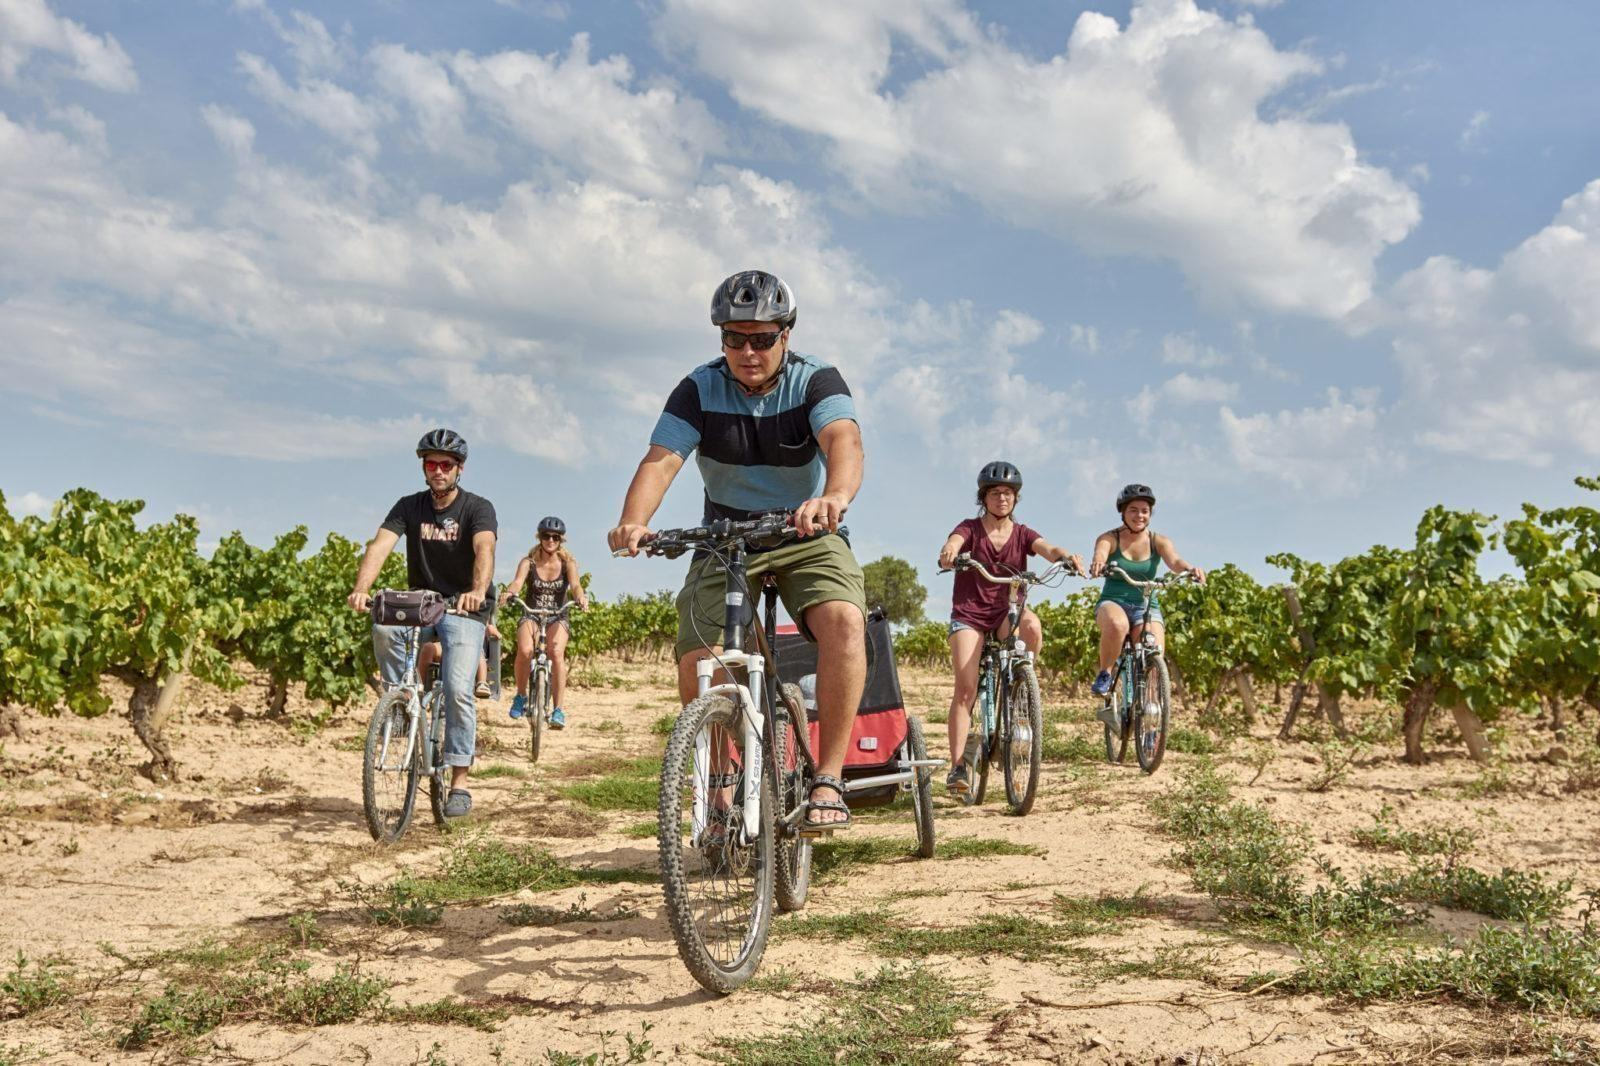 Visit a Winery on the Carretera del Vi by Bicycle or Ebike